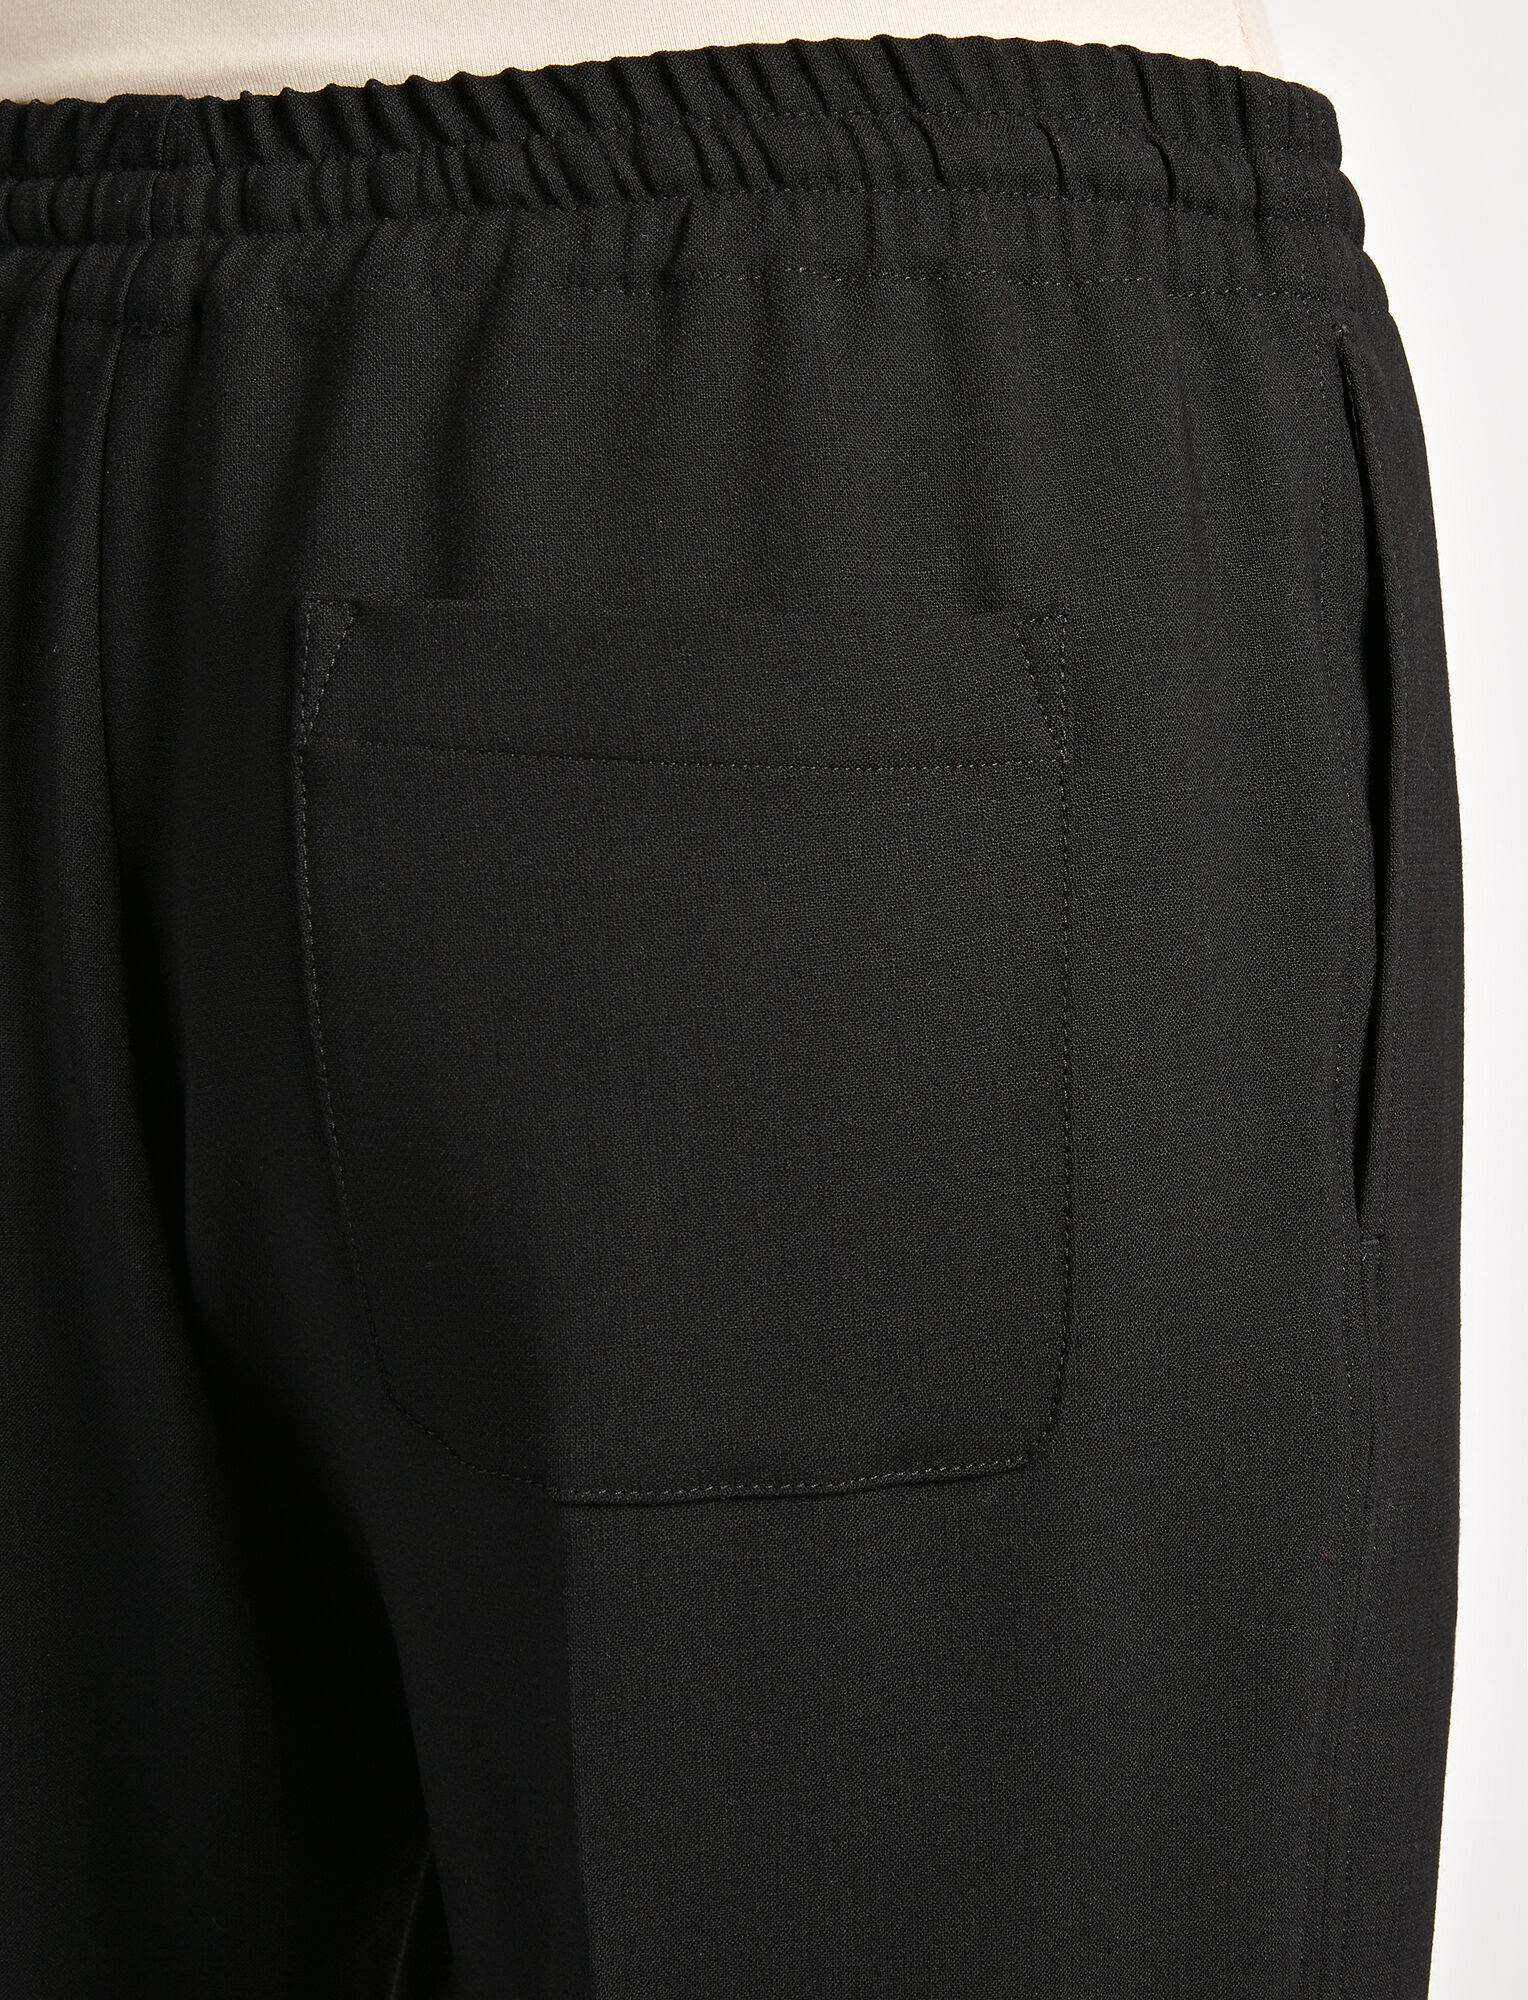 Joseph, Stretch Wool Louna Trouser, in BLACK